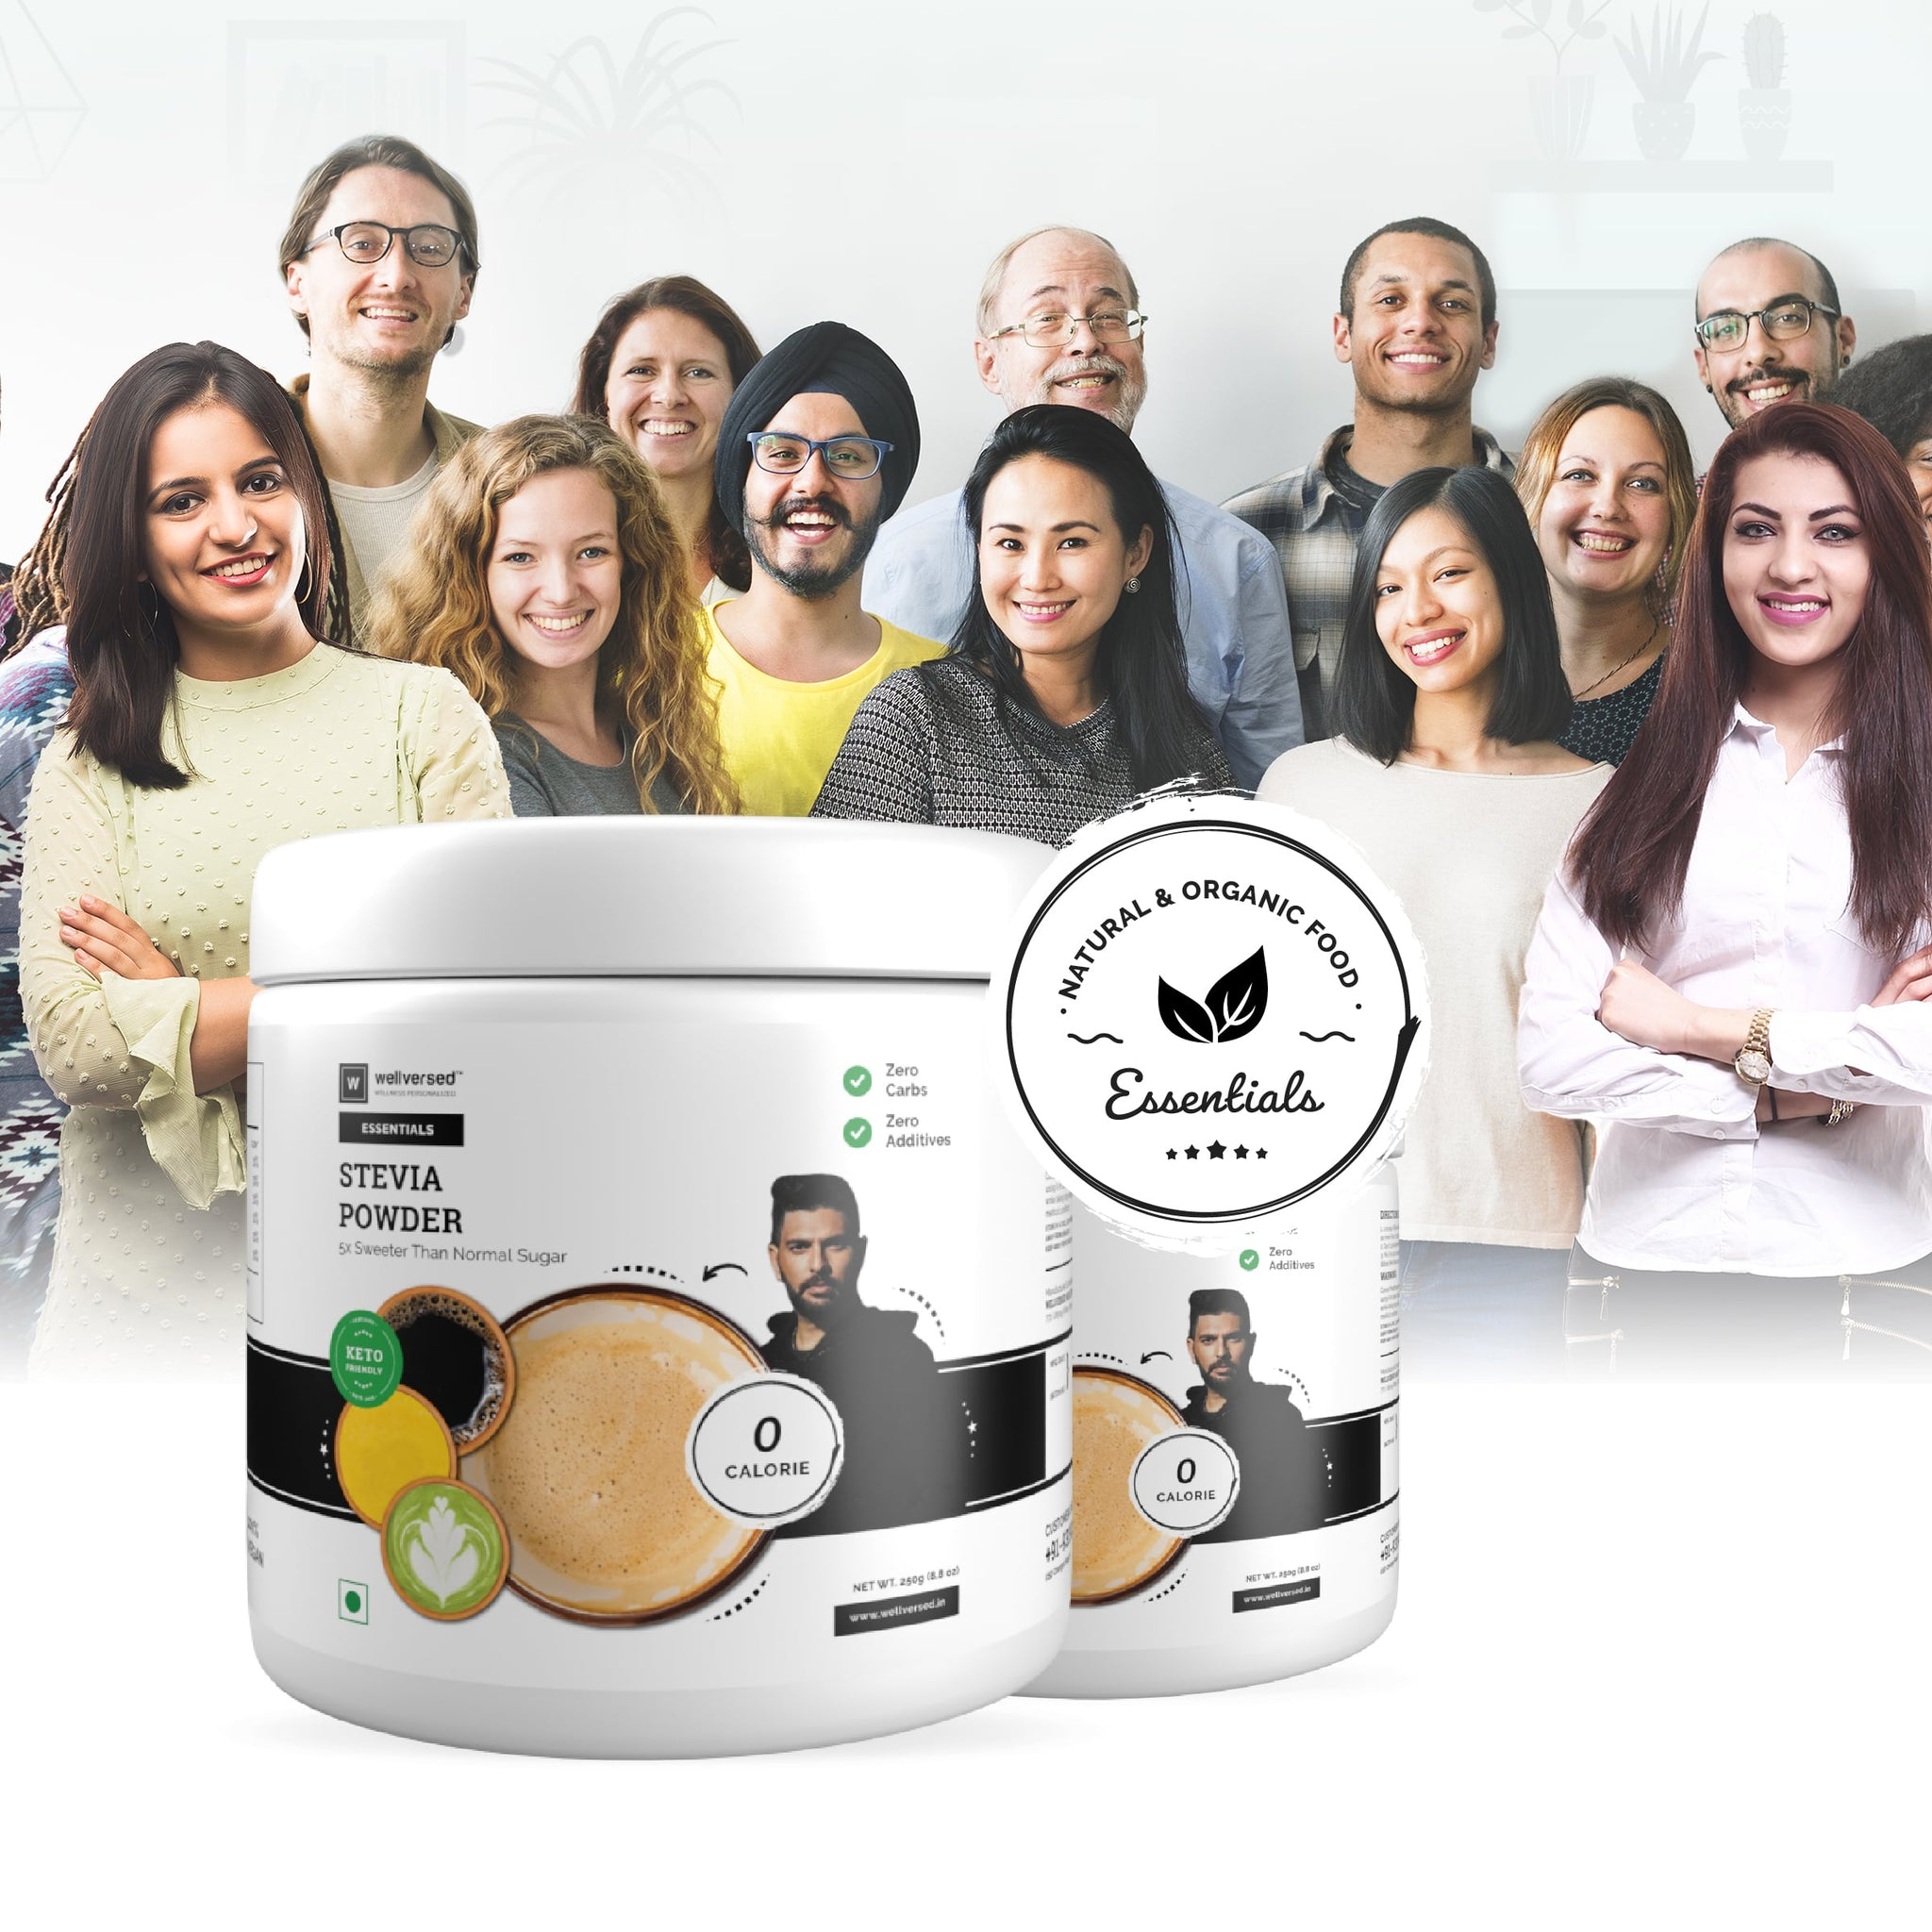 Wellversed - Stevia Powder | 100% Natural Sugar Free Sweetener | Zero Calorie, Zero Carb